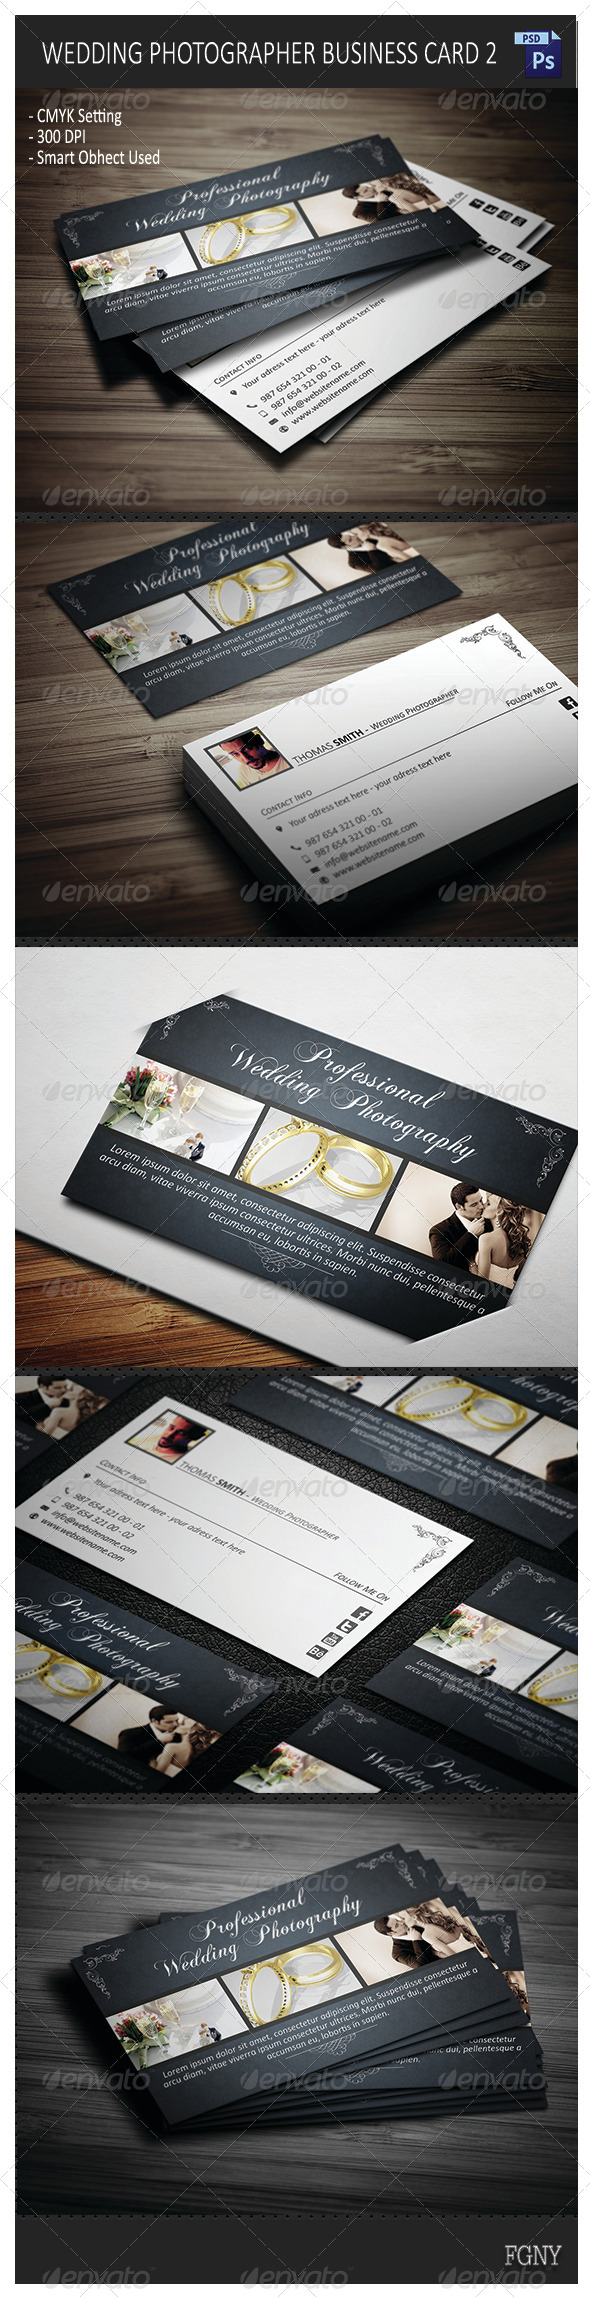 GraphicRiver Wedding Photographer Business Card 2 6079286